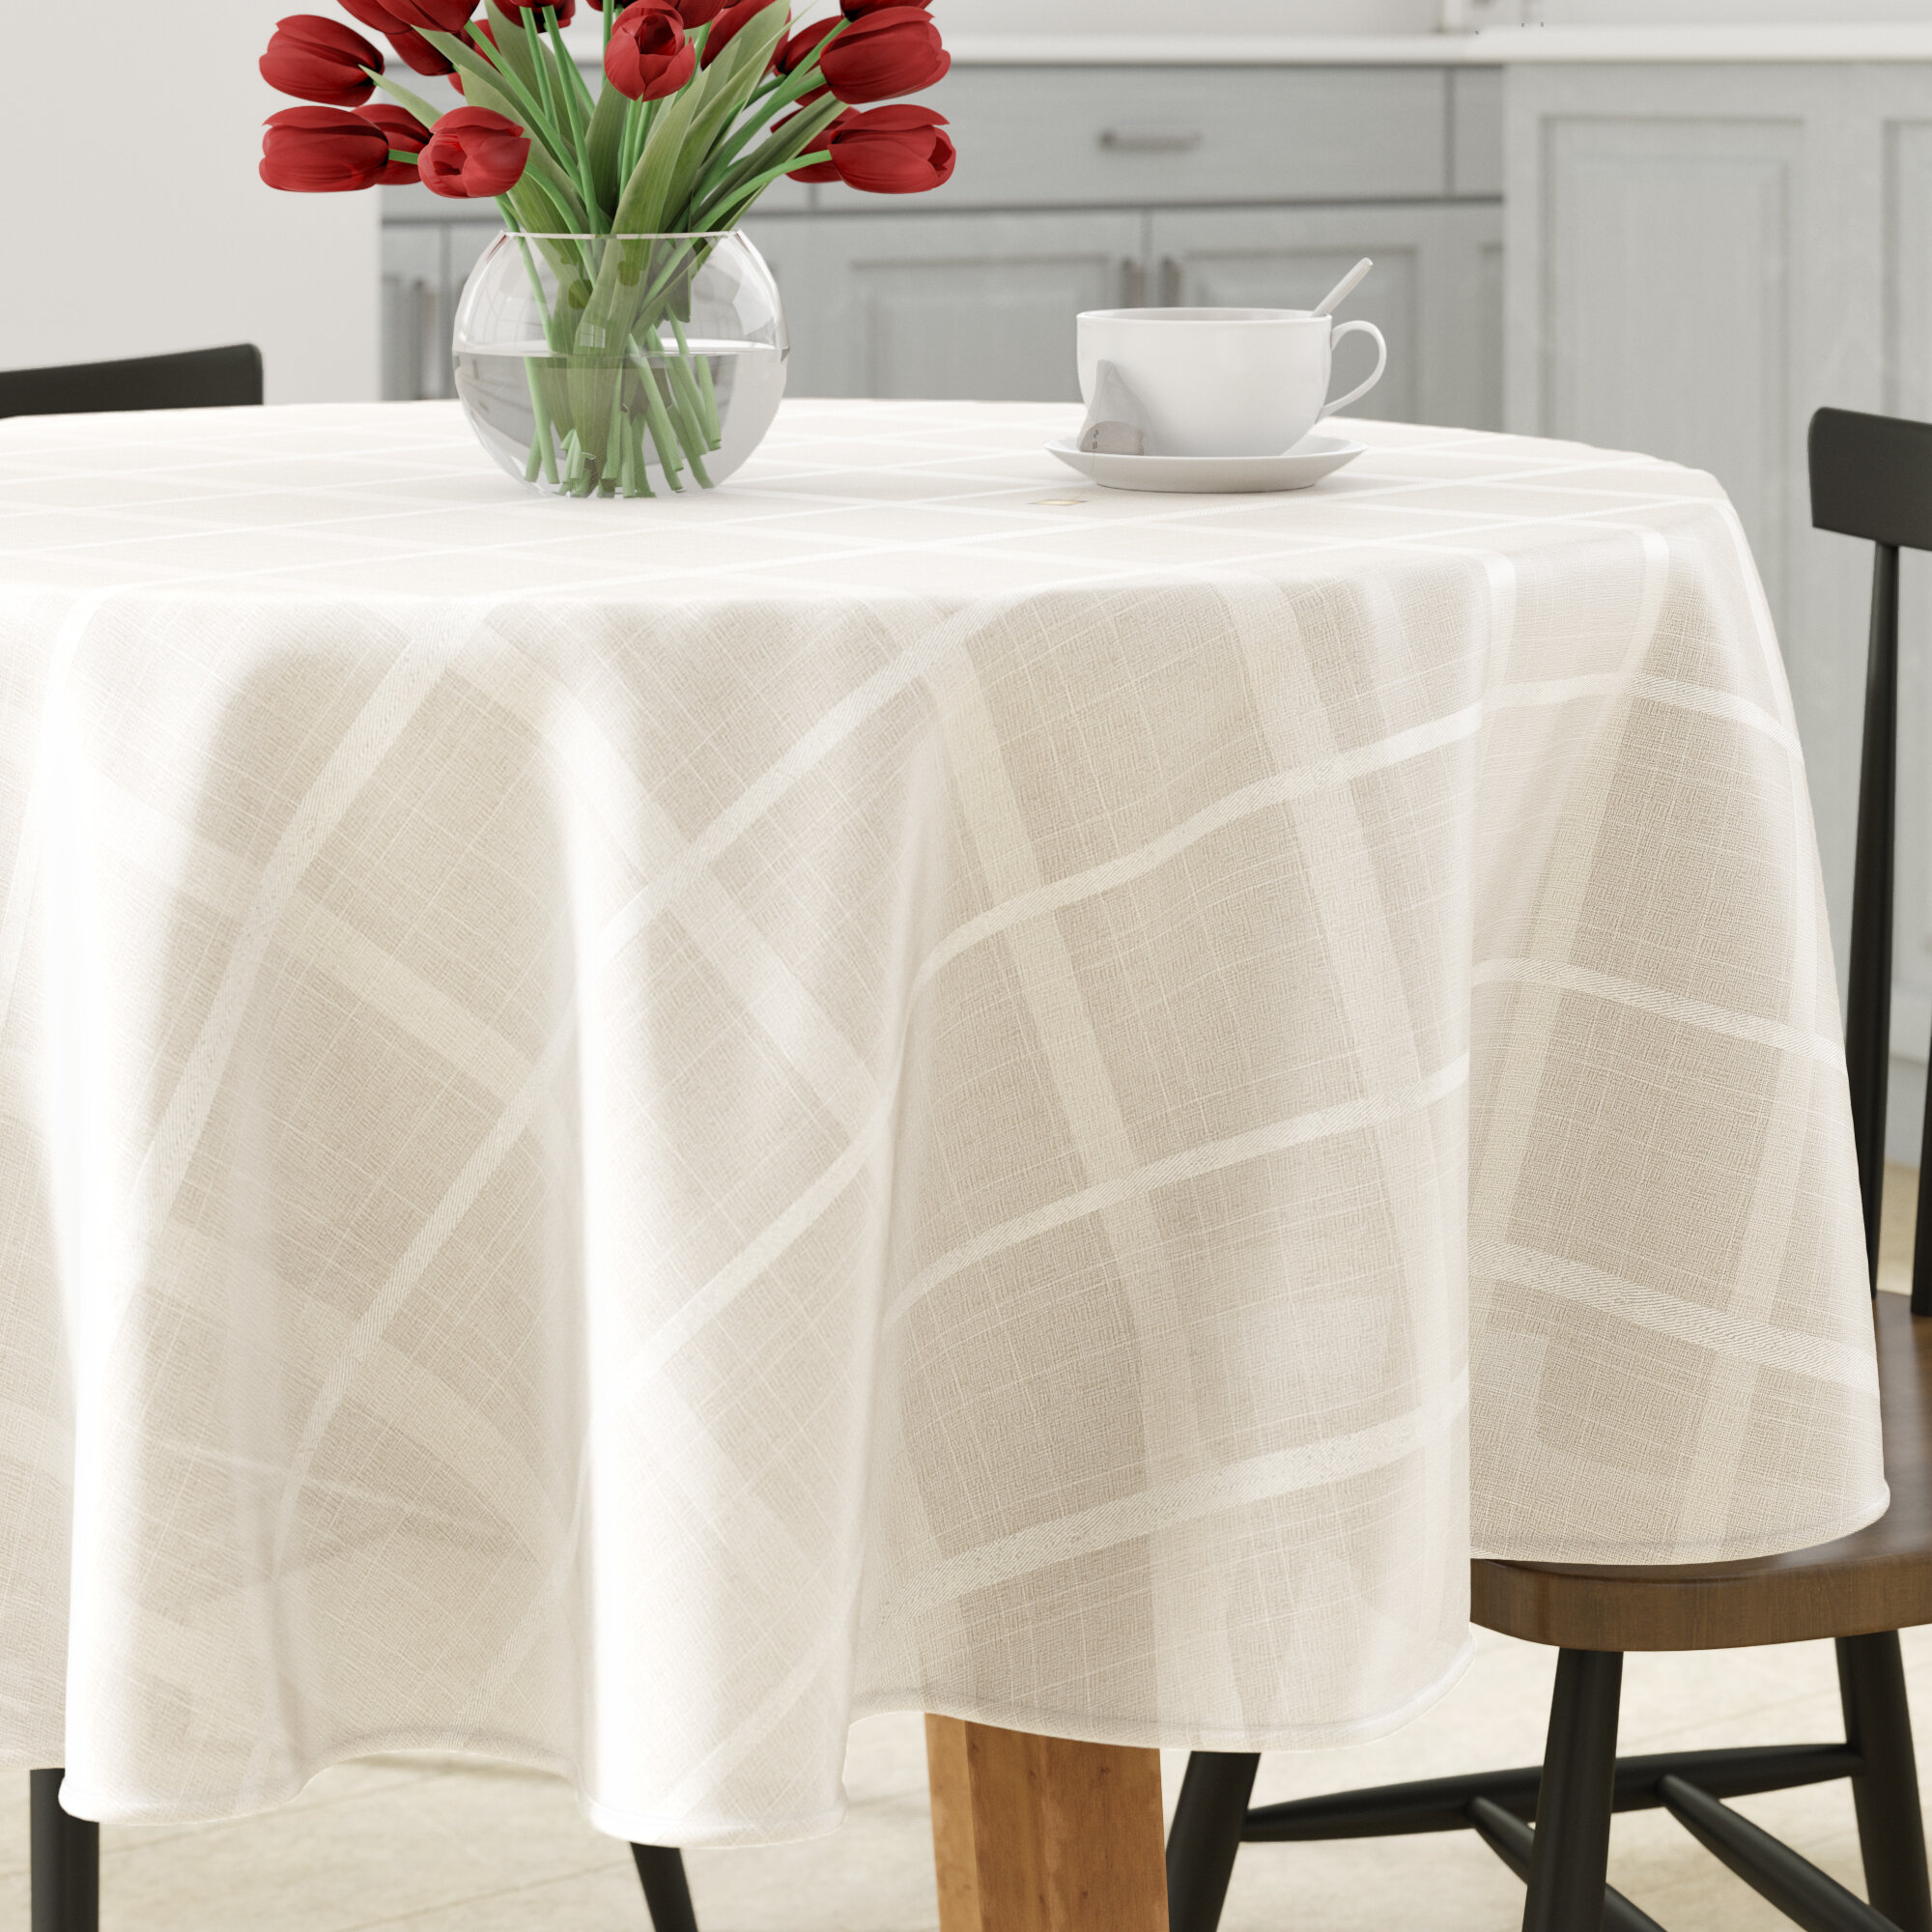 Charlton Home Karli Round Tablecloth